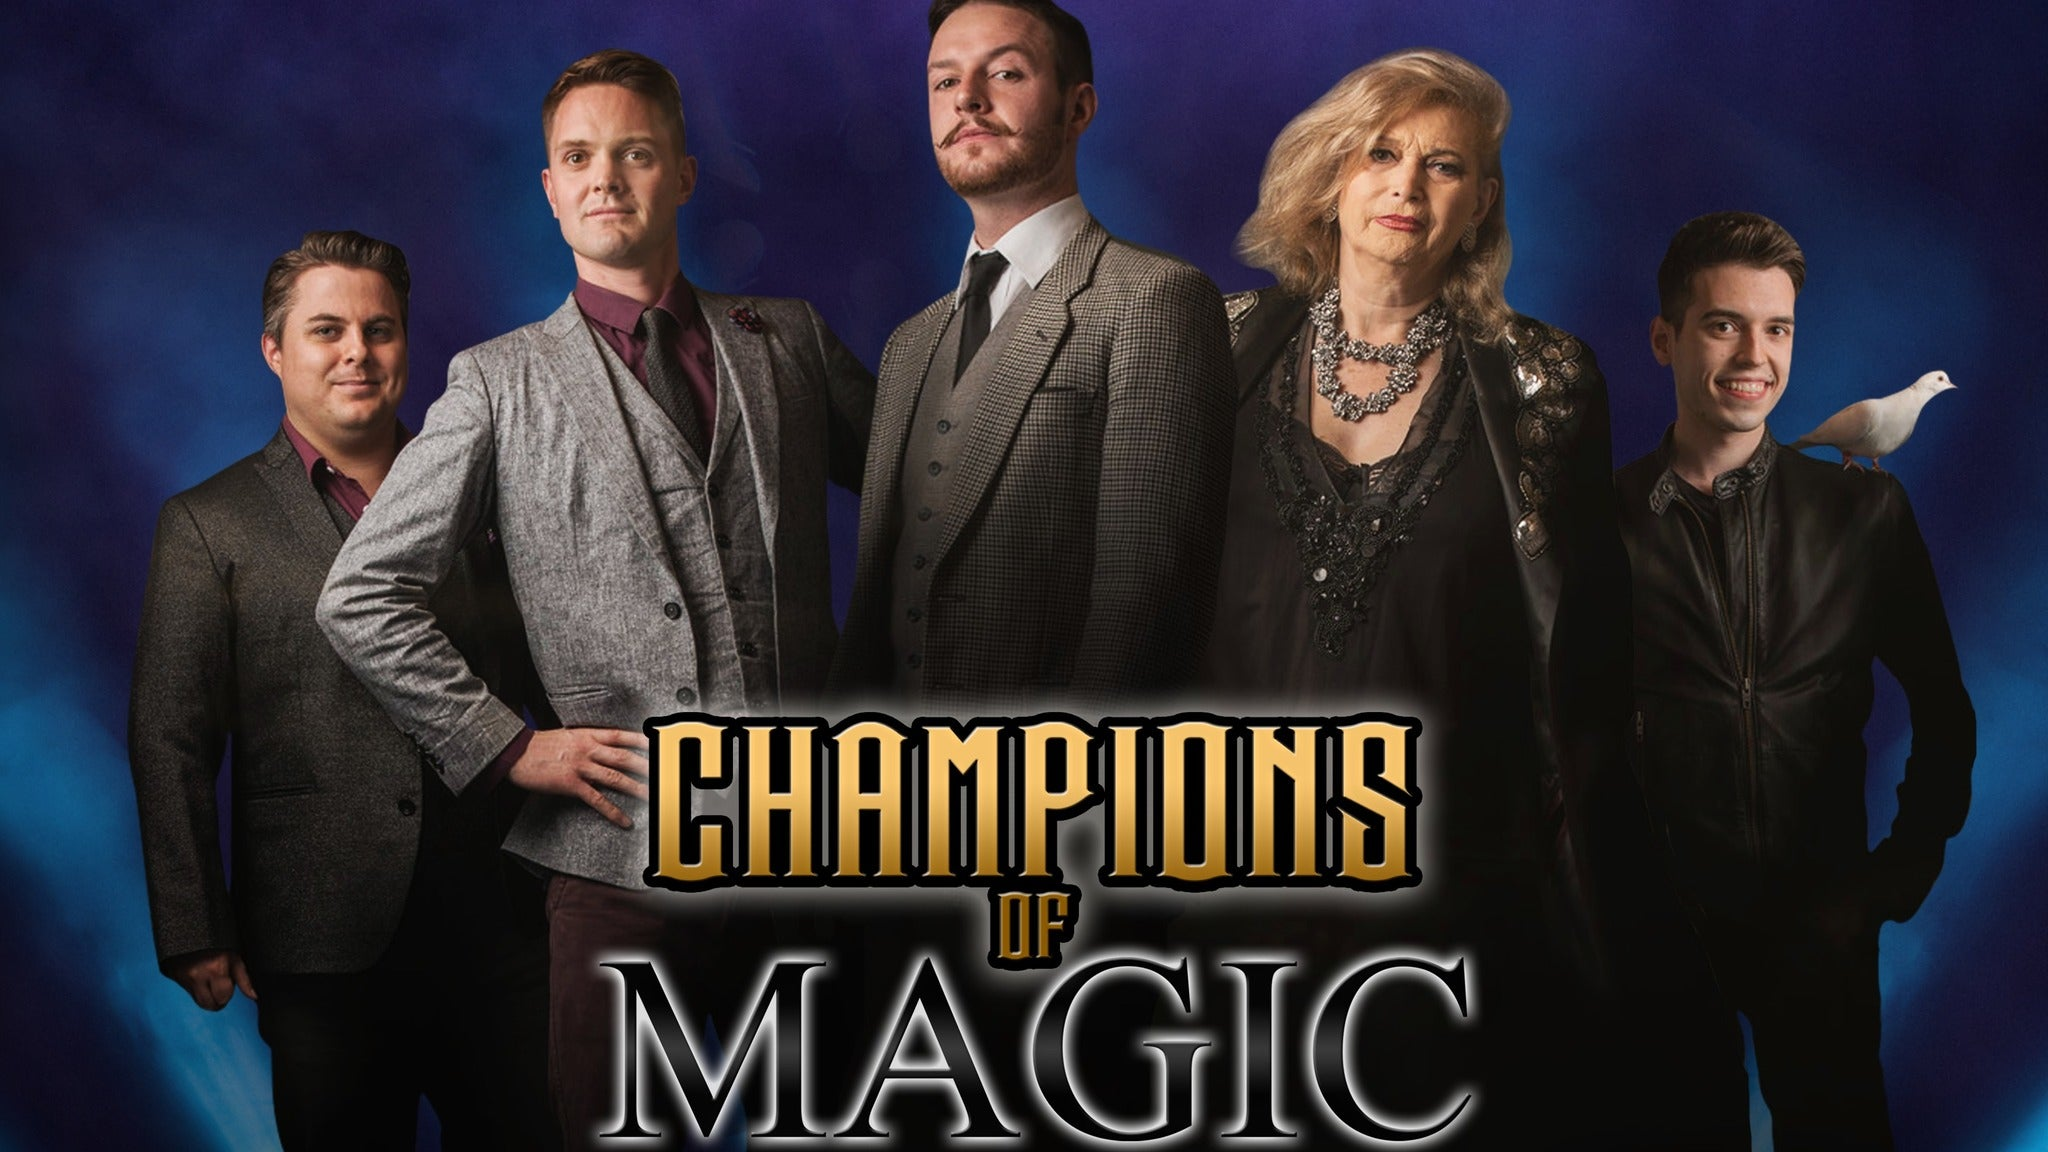 Civic Arts Plaza presents CHAMPIONS OF MAGIC